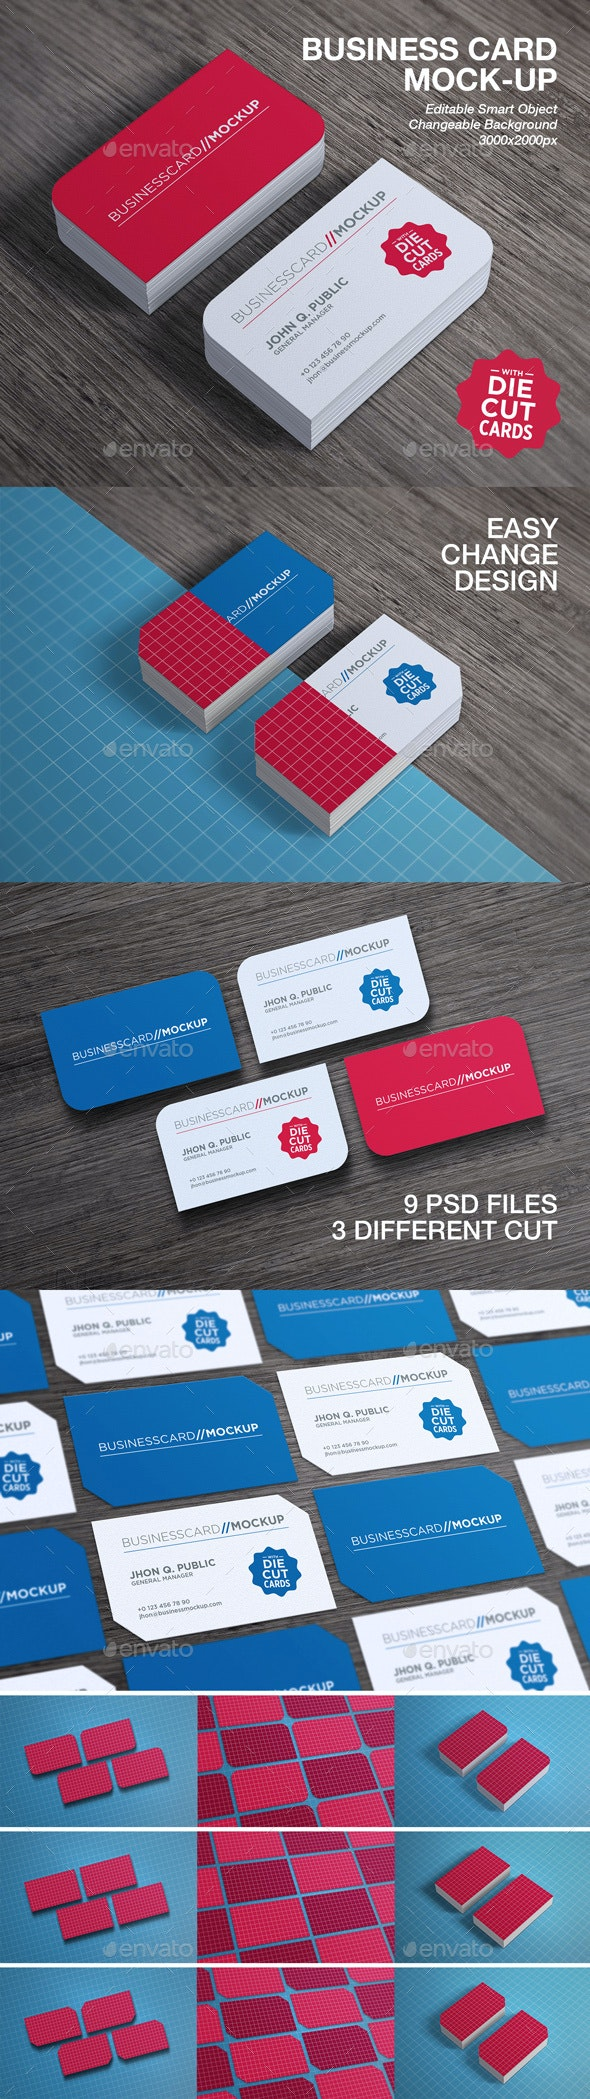 Die Cut Business Card Mock-Up - Business Cards Print